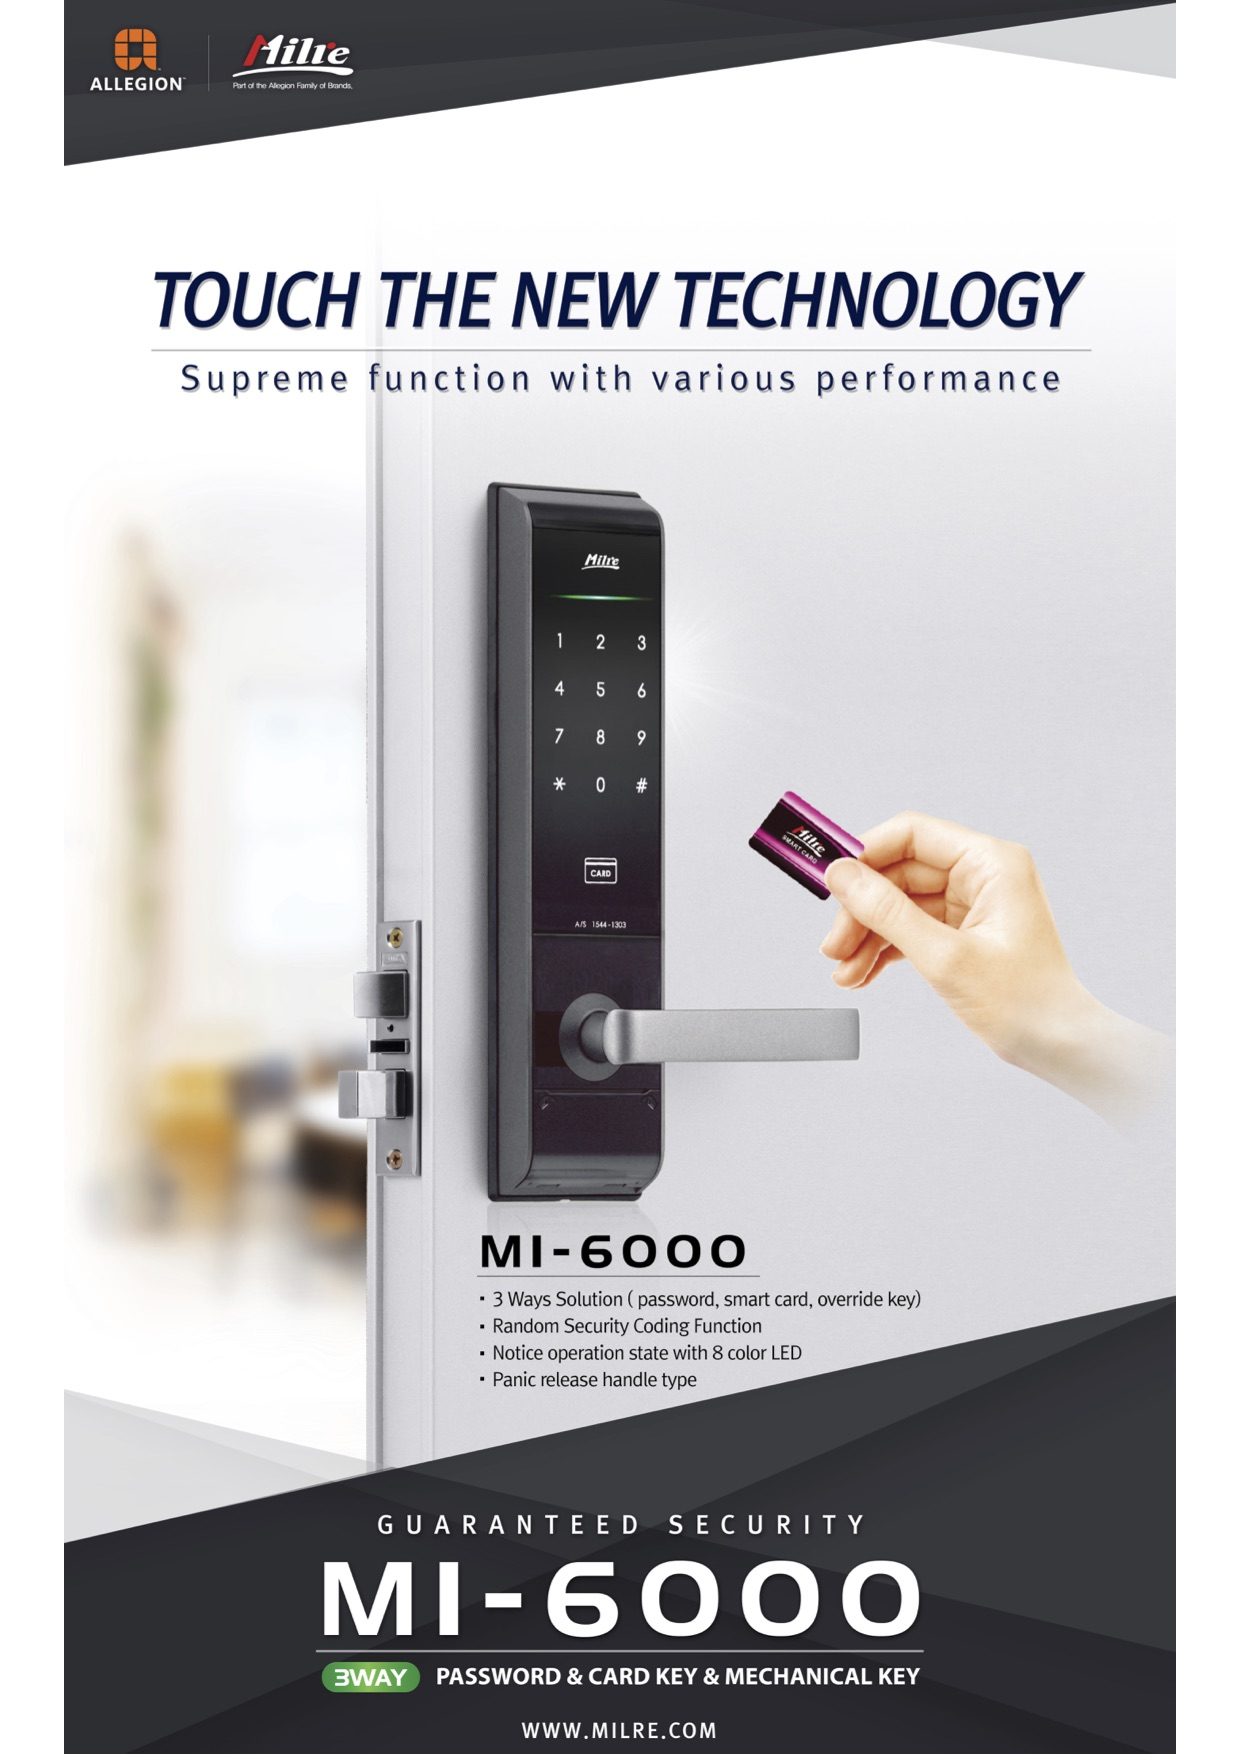 digital door lock Milre MI-6000YS new logo with Allegion